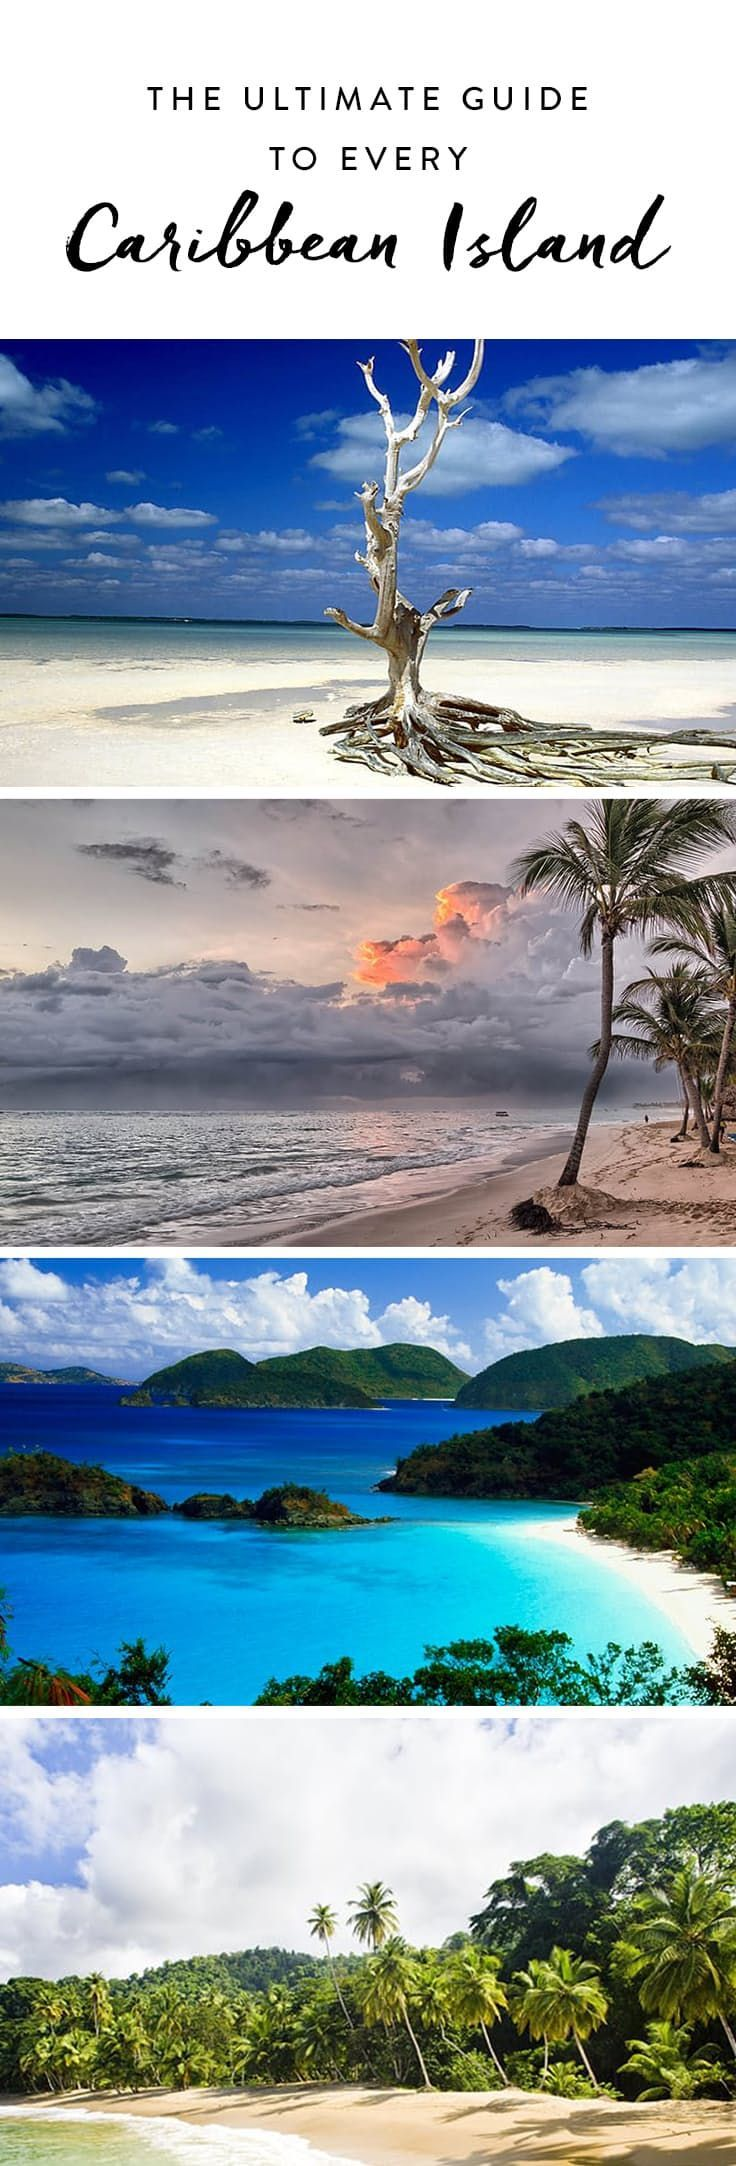 The Ultimate Guide to Every Caribbean Island via @PureWow